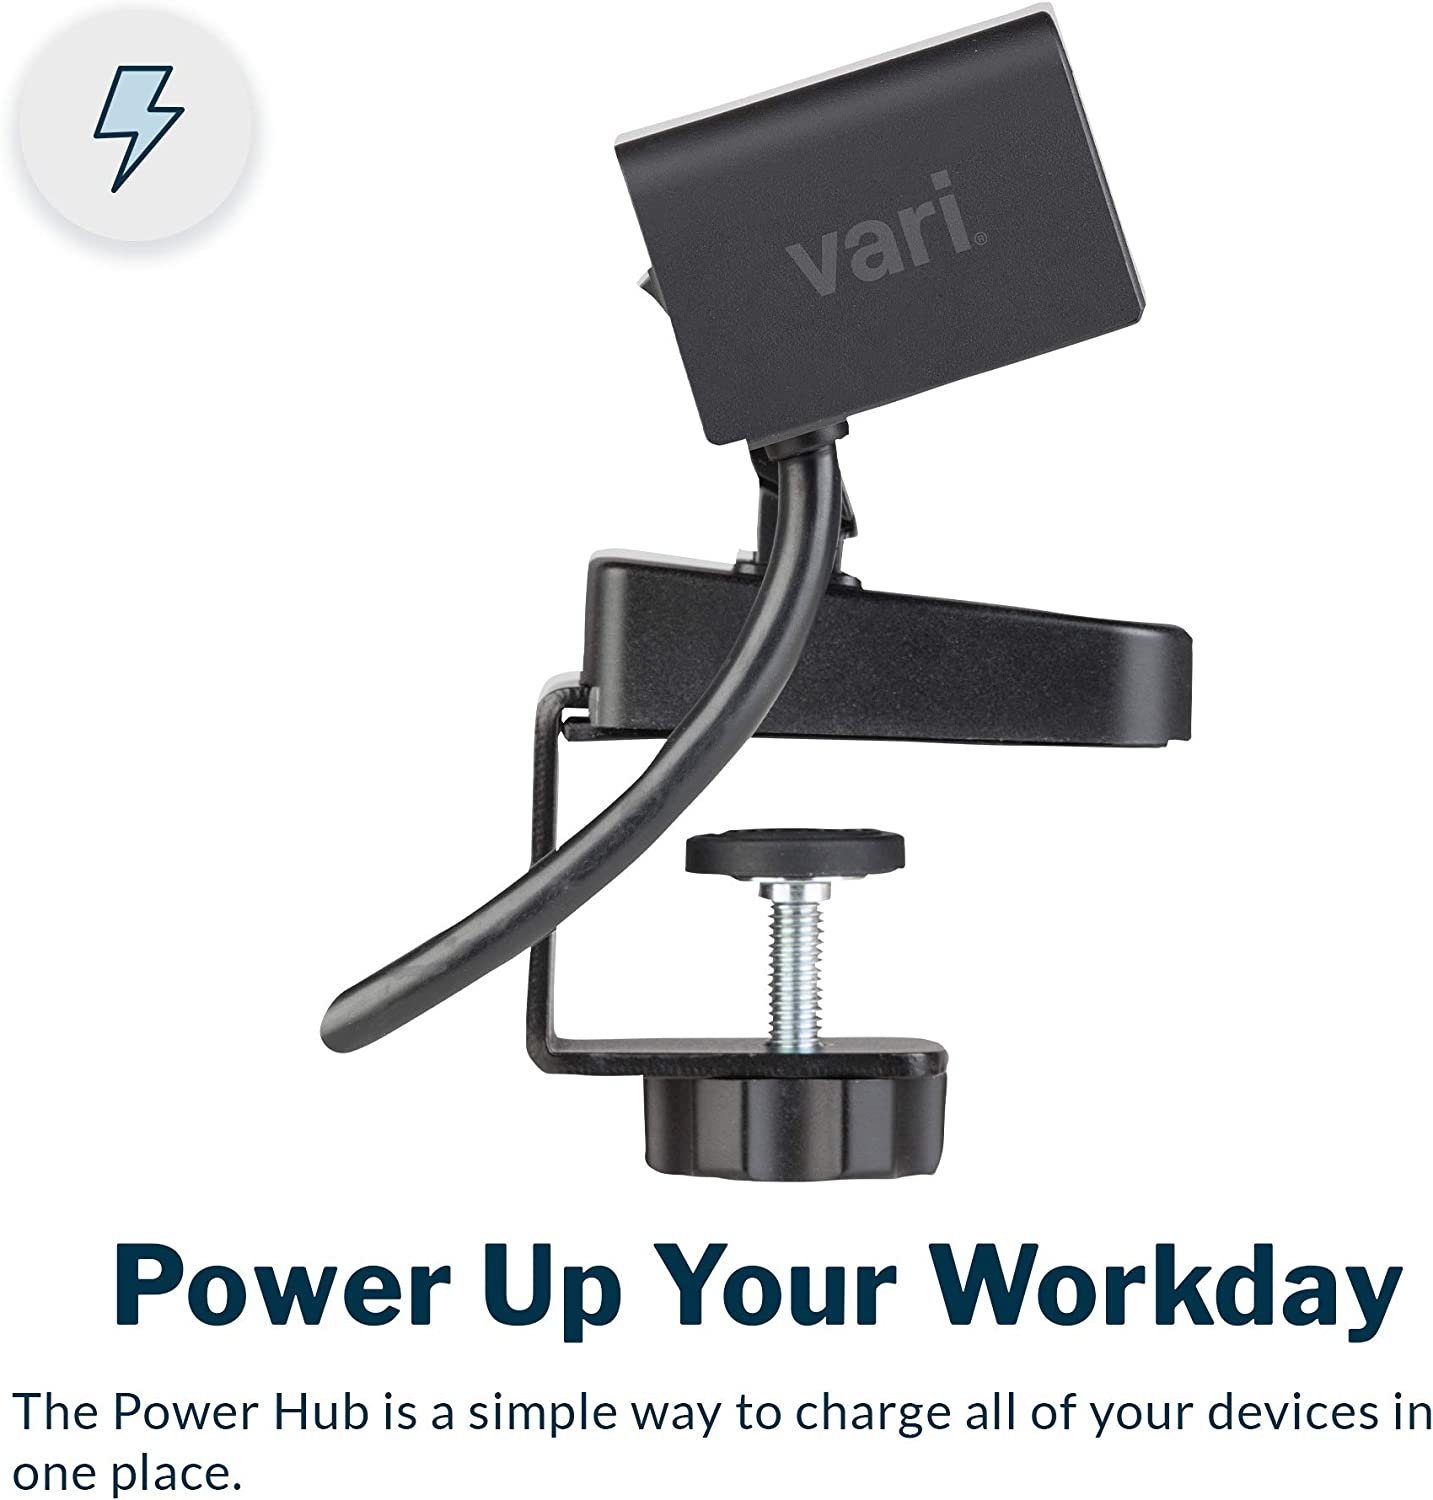 Vari Power Hub - Charging Power Station with Desktop Mount - 3 AC Outlets and 2 USB Ports - 12' Cord - Work or Home Office - No Tool Assembly